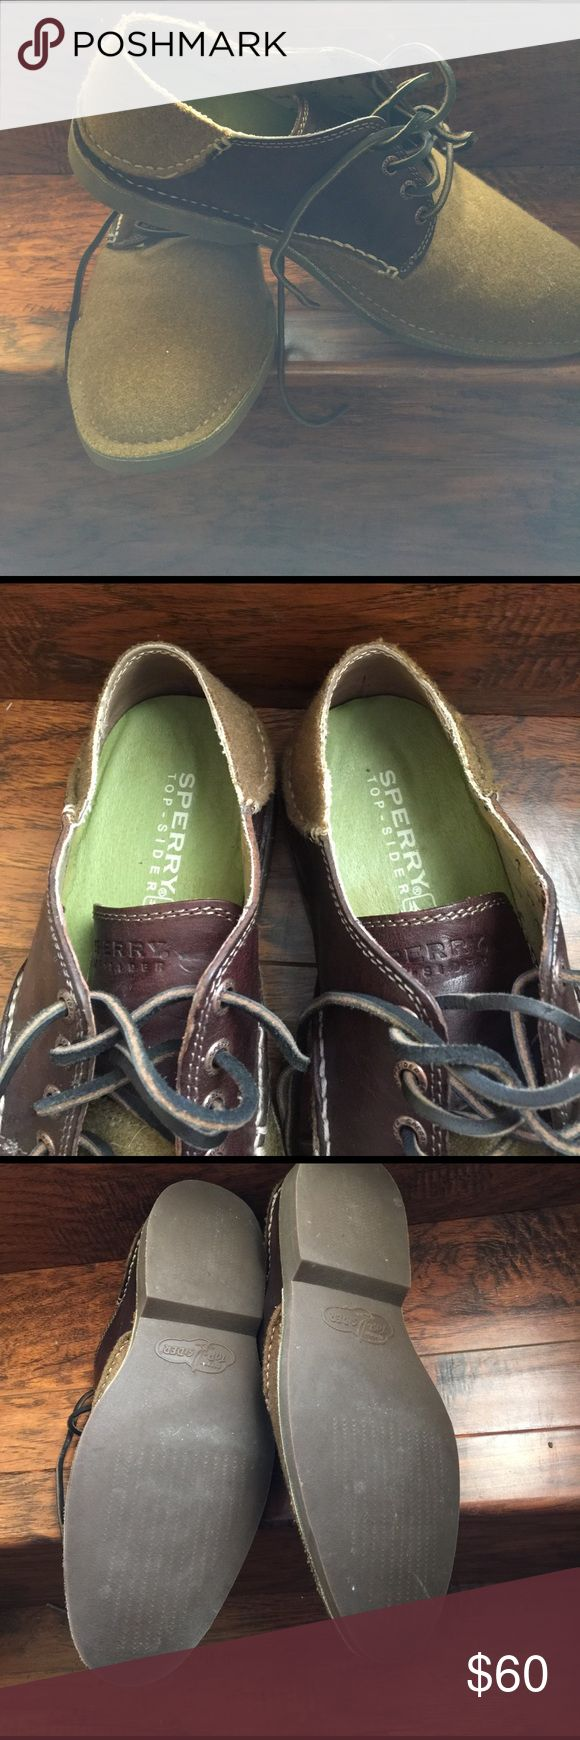 Sperry shoes Men's Sperry shoes excellent condition Sperry Top-Sider Shoes Boat Shoes